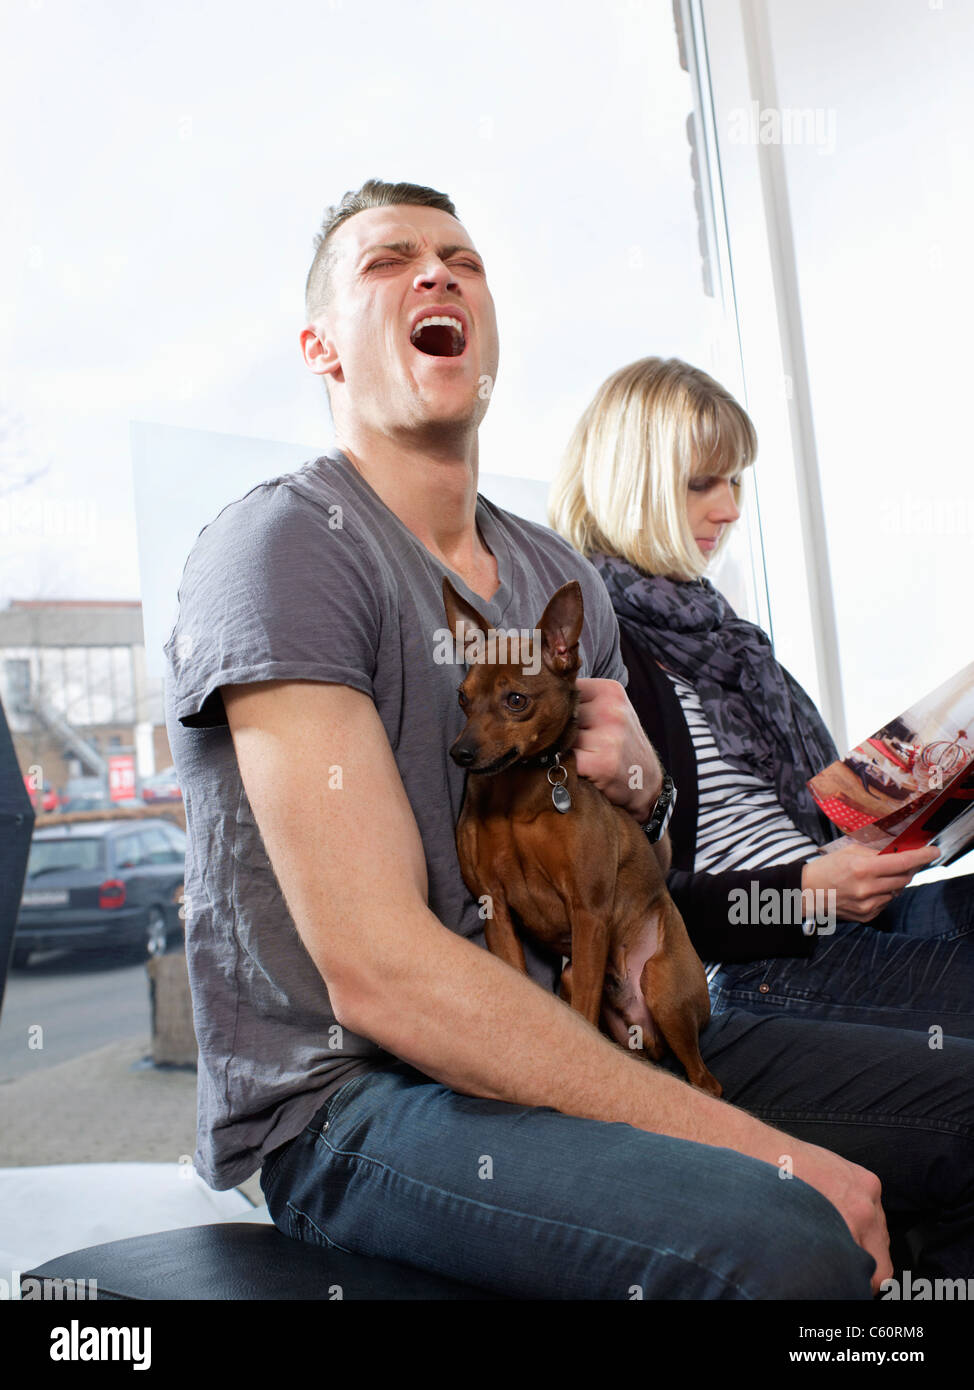 Man howling with his dog - Stock Image